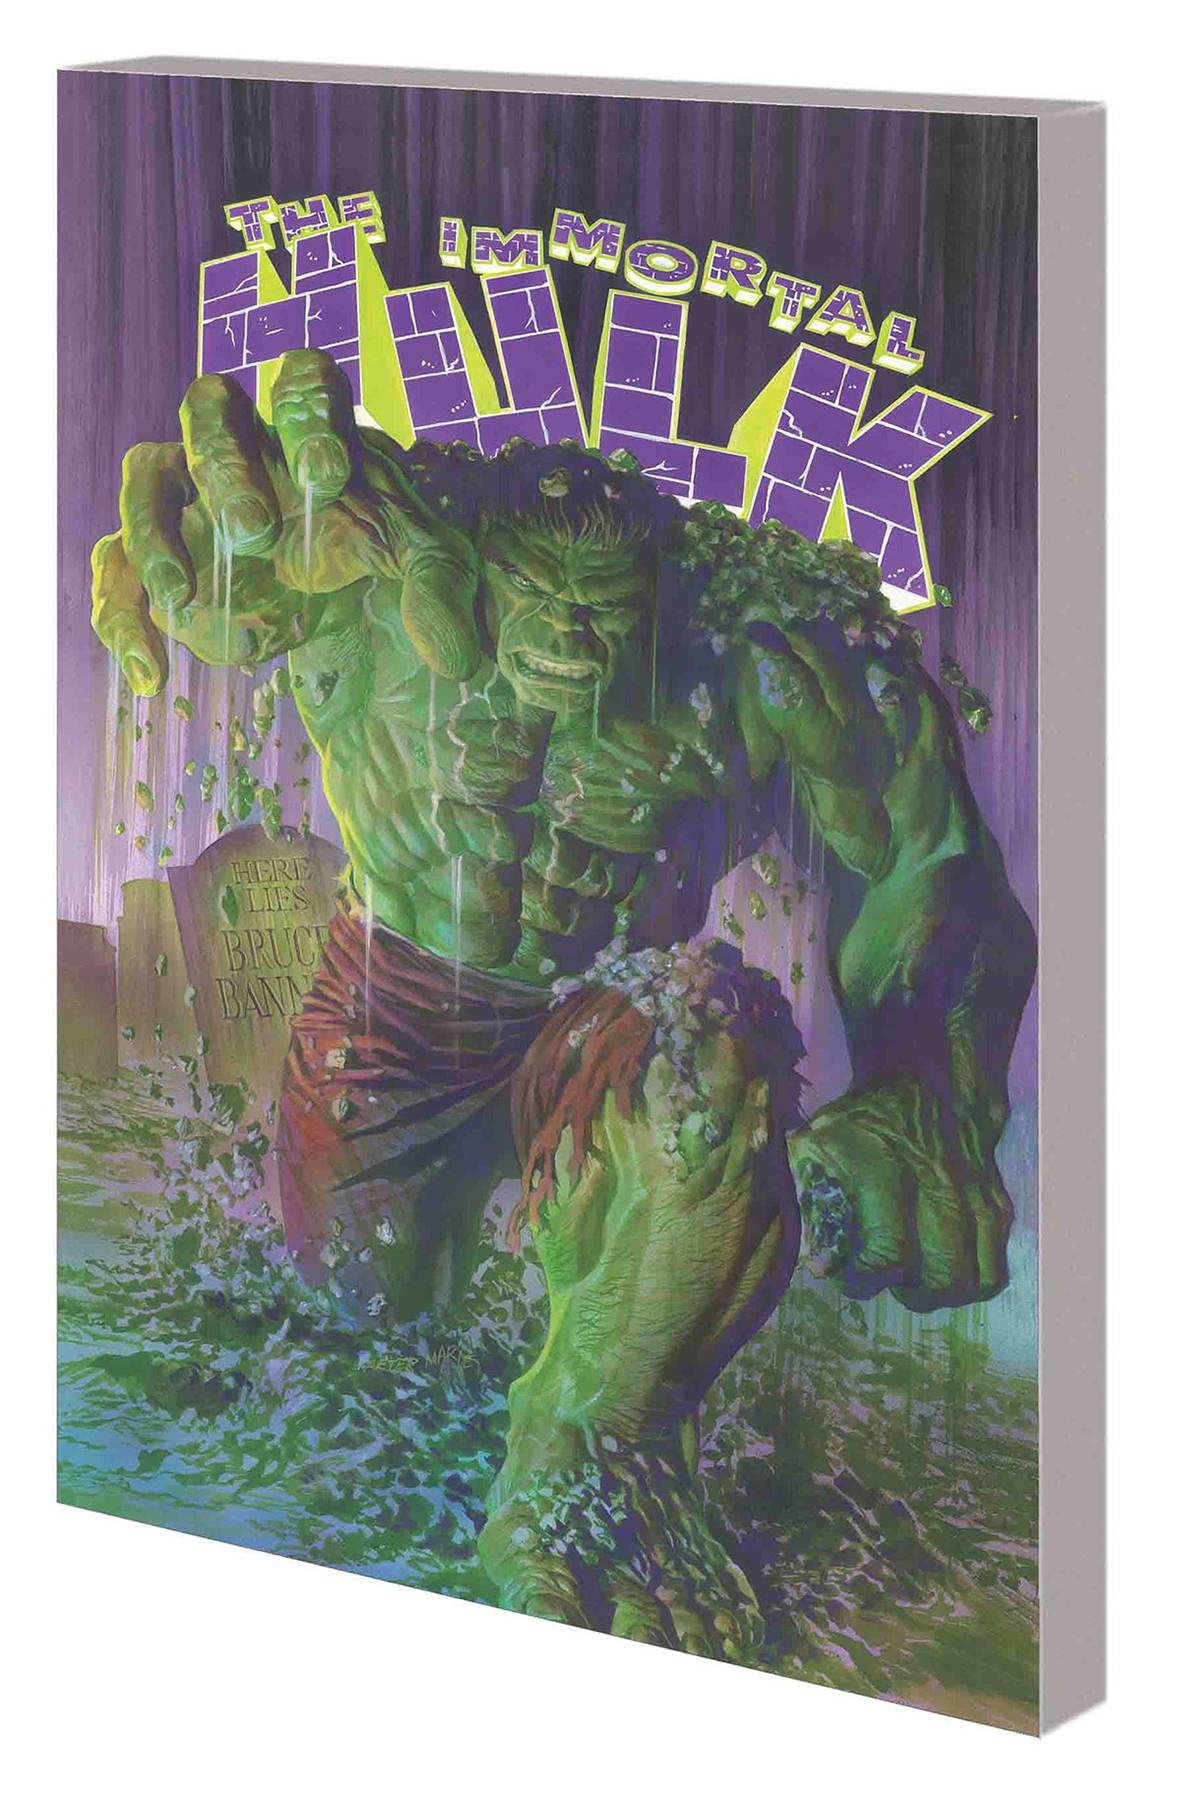 The Immortal Hulk v.1: Or Is He Both?